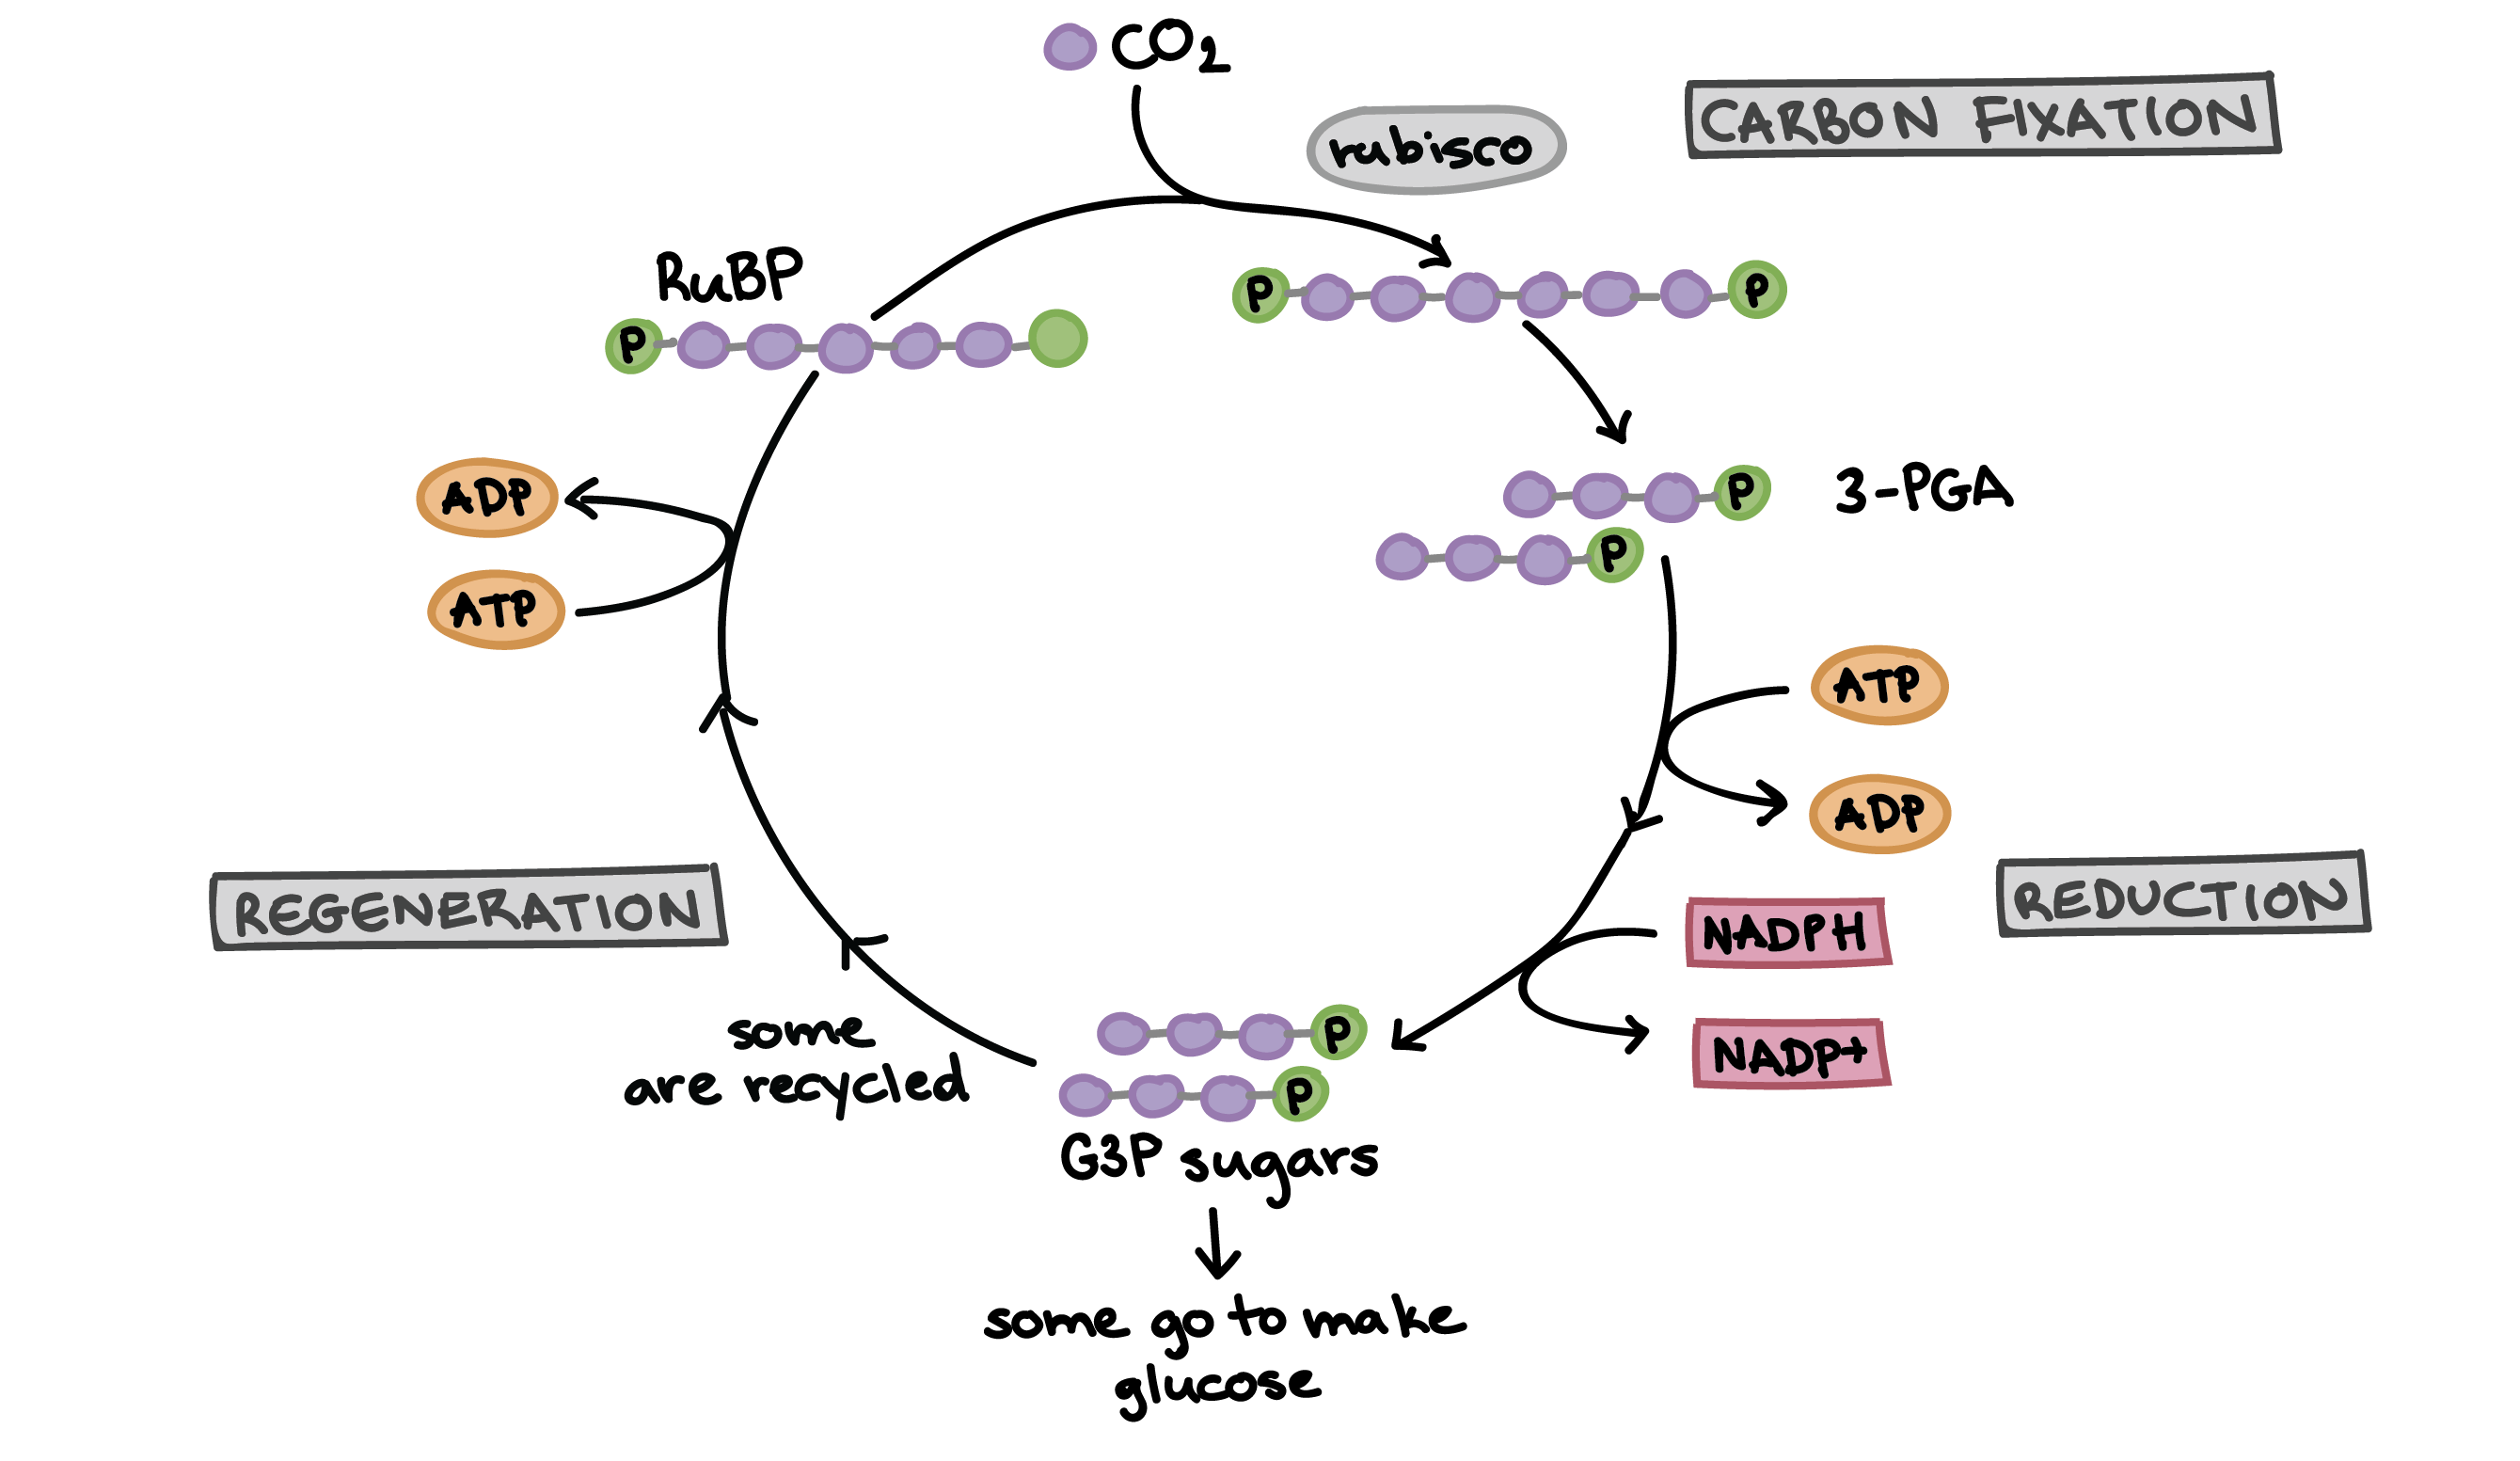 1 The Calvin Cycle